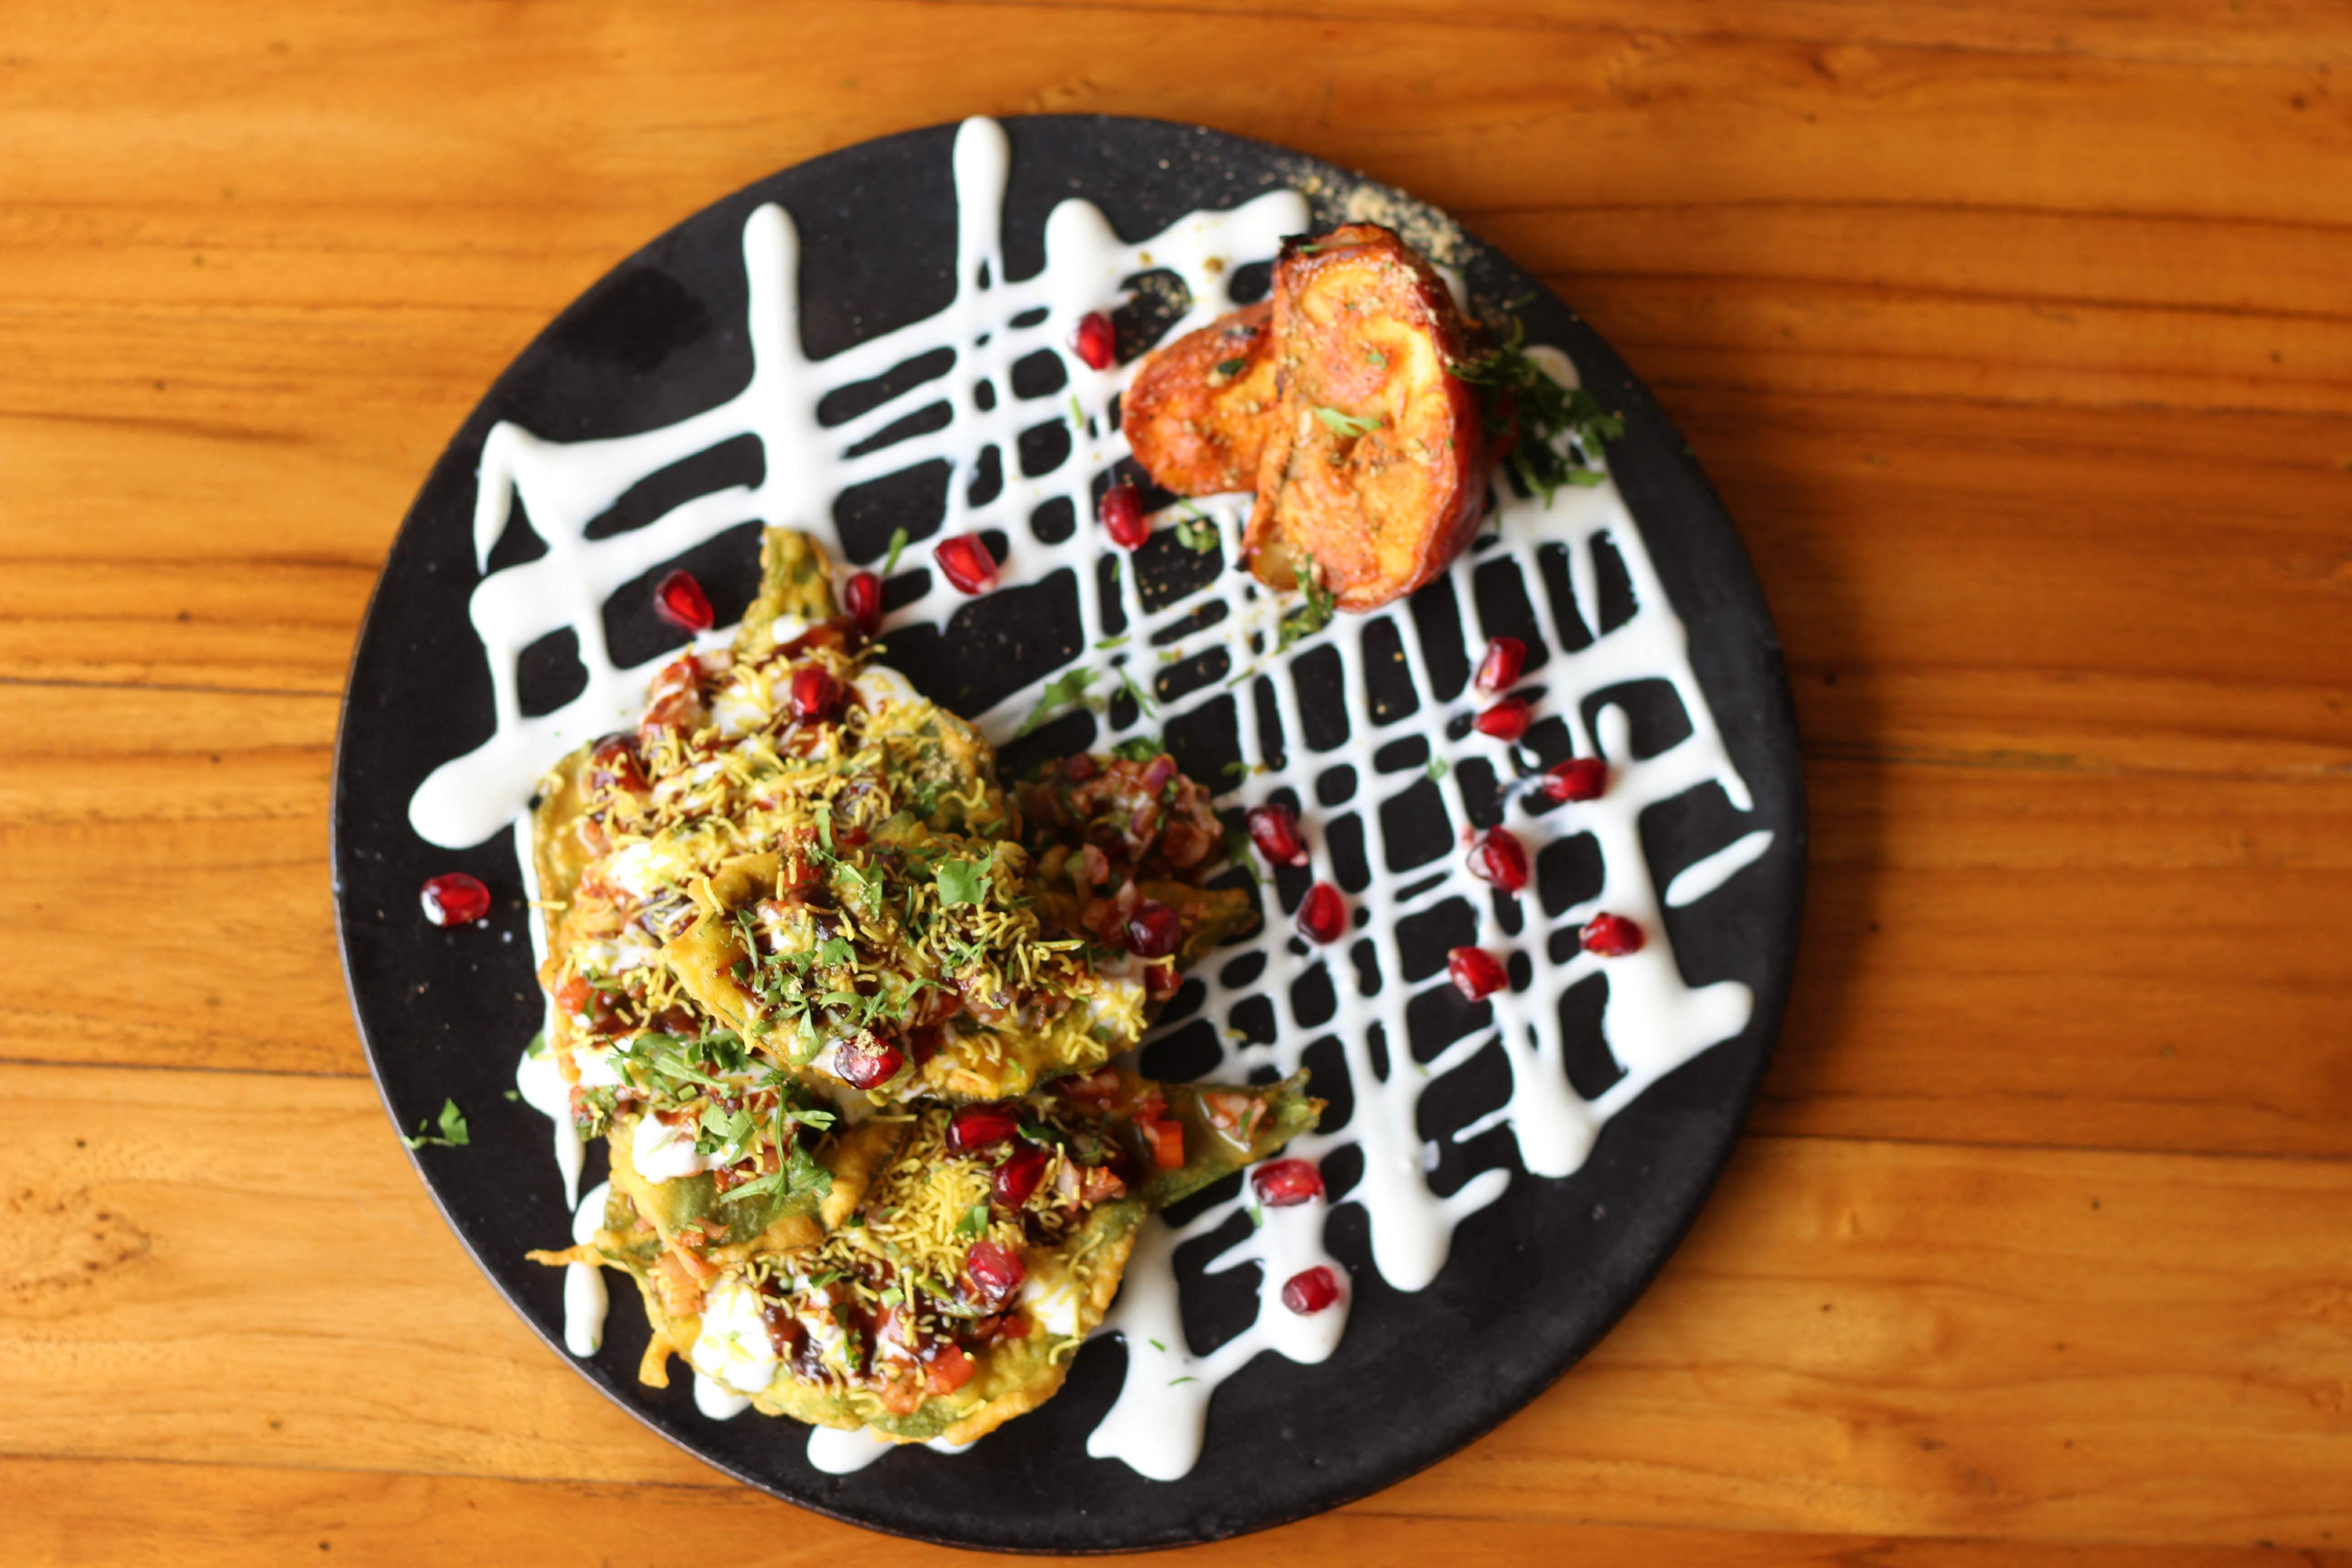 This Place In Chembur Has Food That's Sure To Keep You Coming Back For More